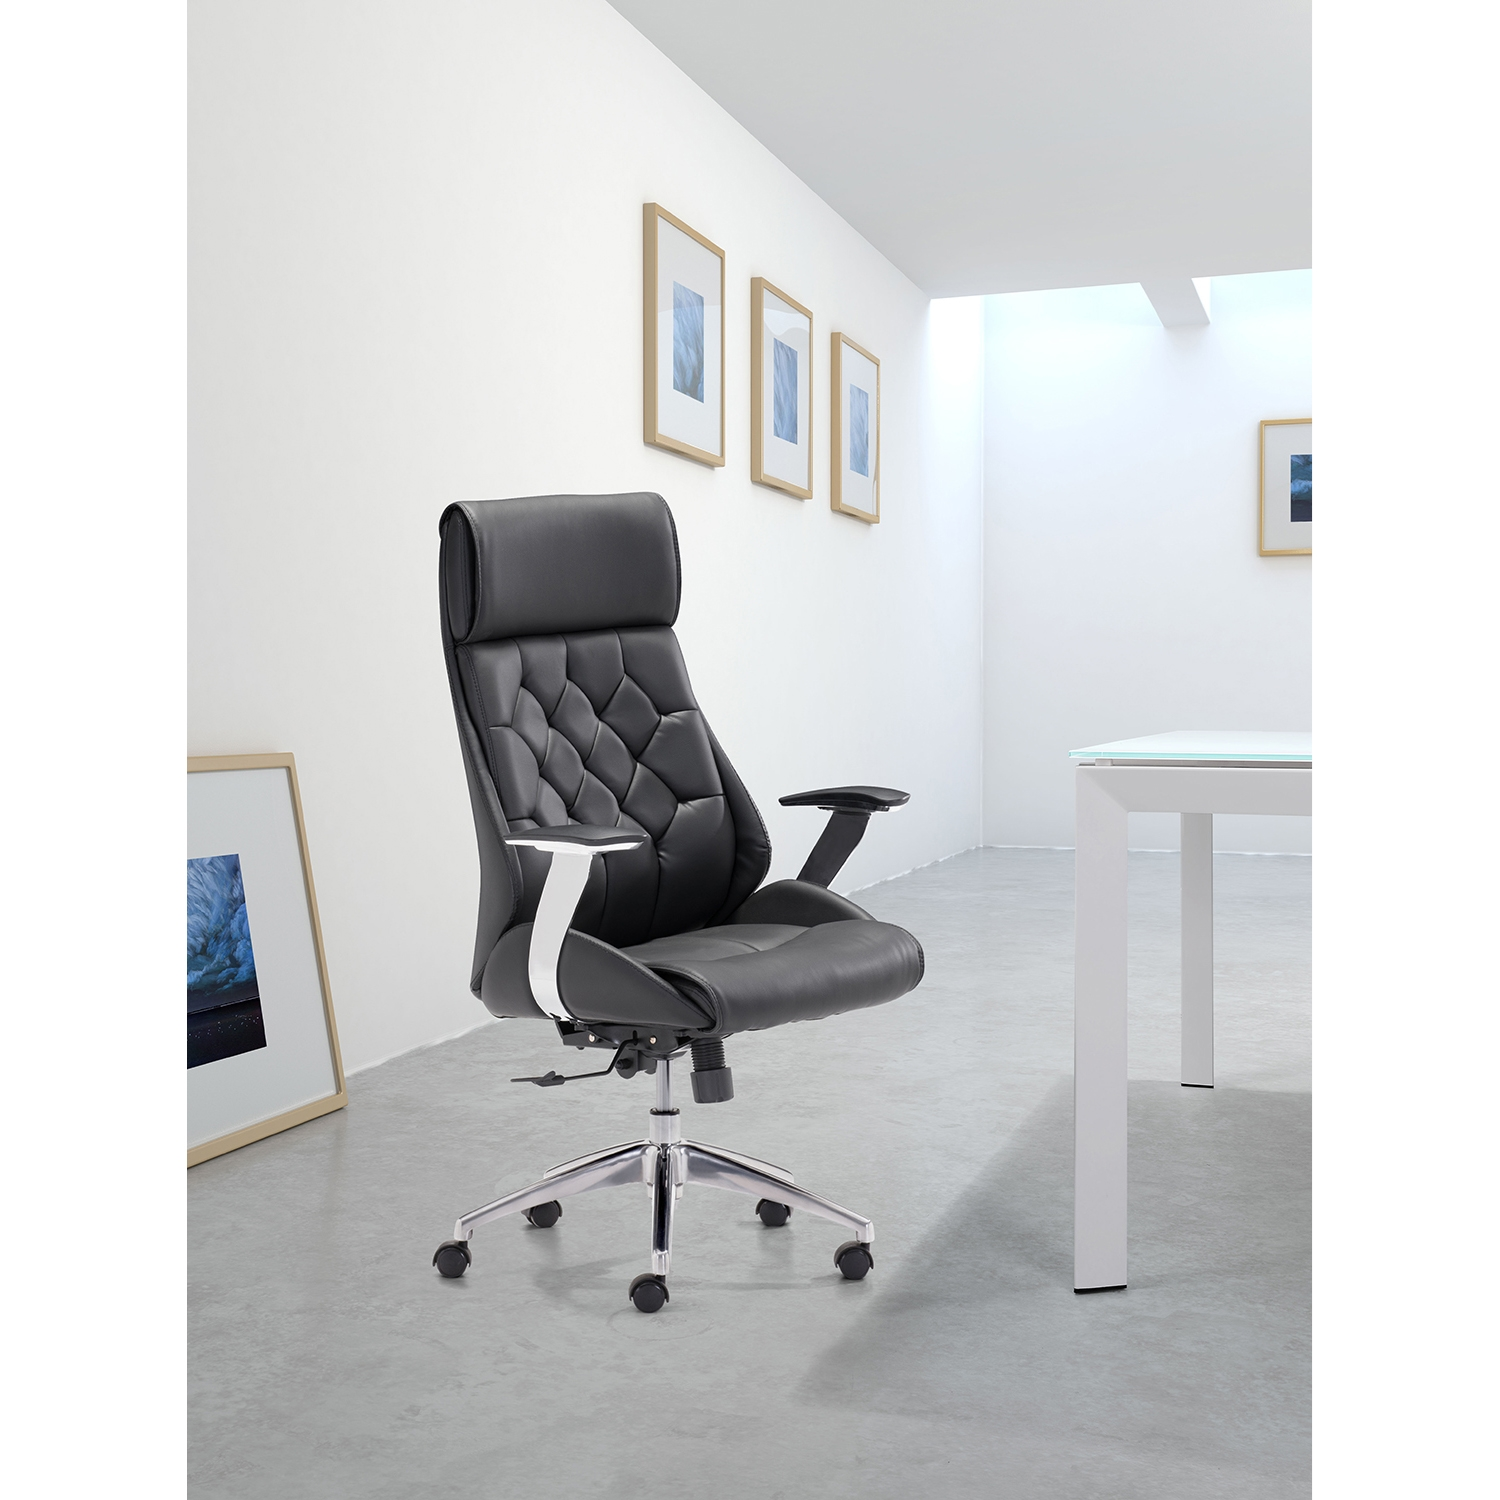 Boutique Office Chair - Adjustable, Casters, Black - ZM-205890